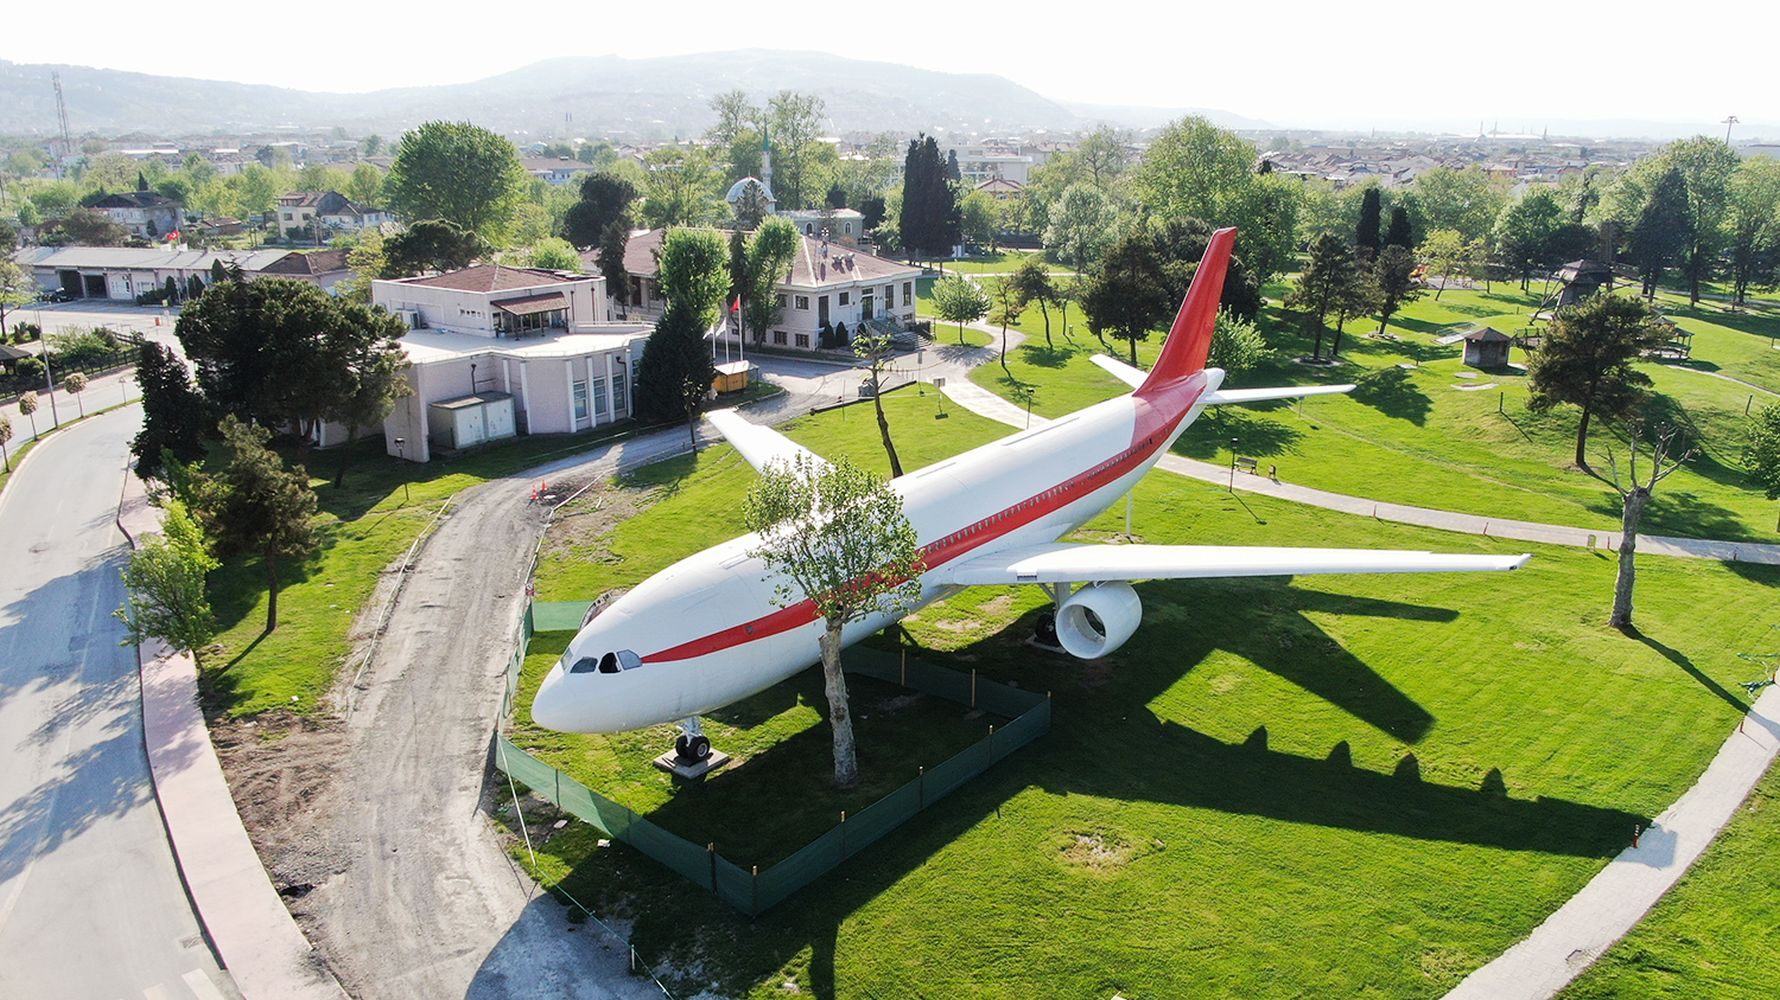 A wagon will be placed next to the plane restaurant in the saint standing park.